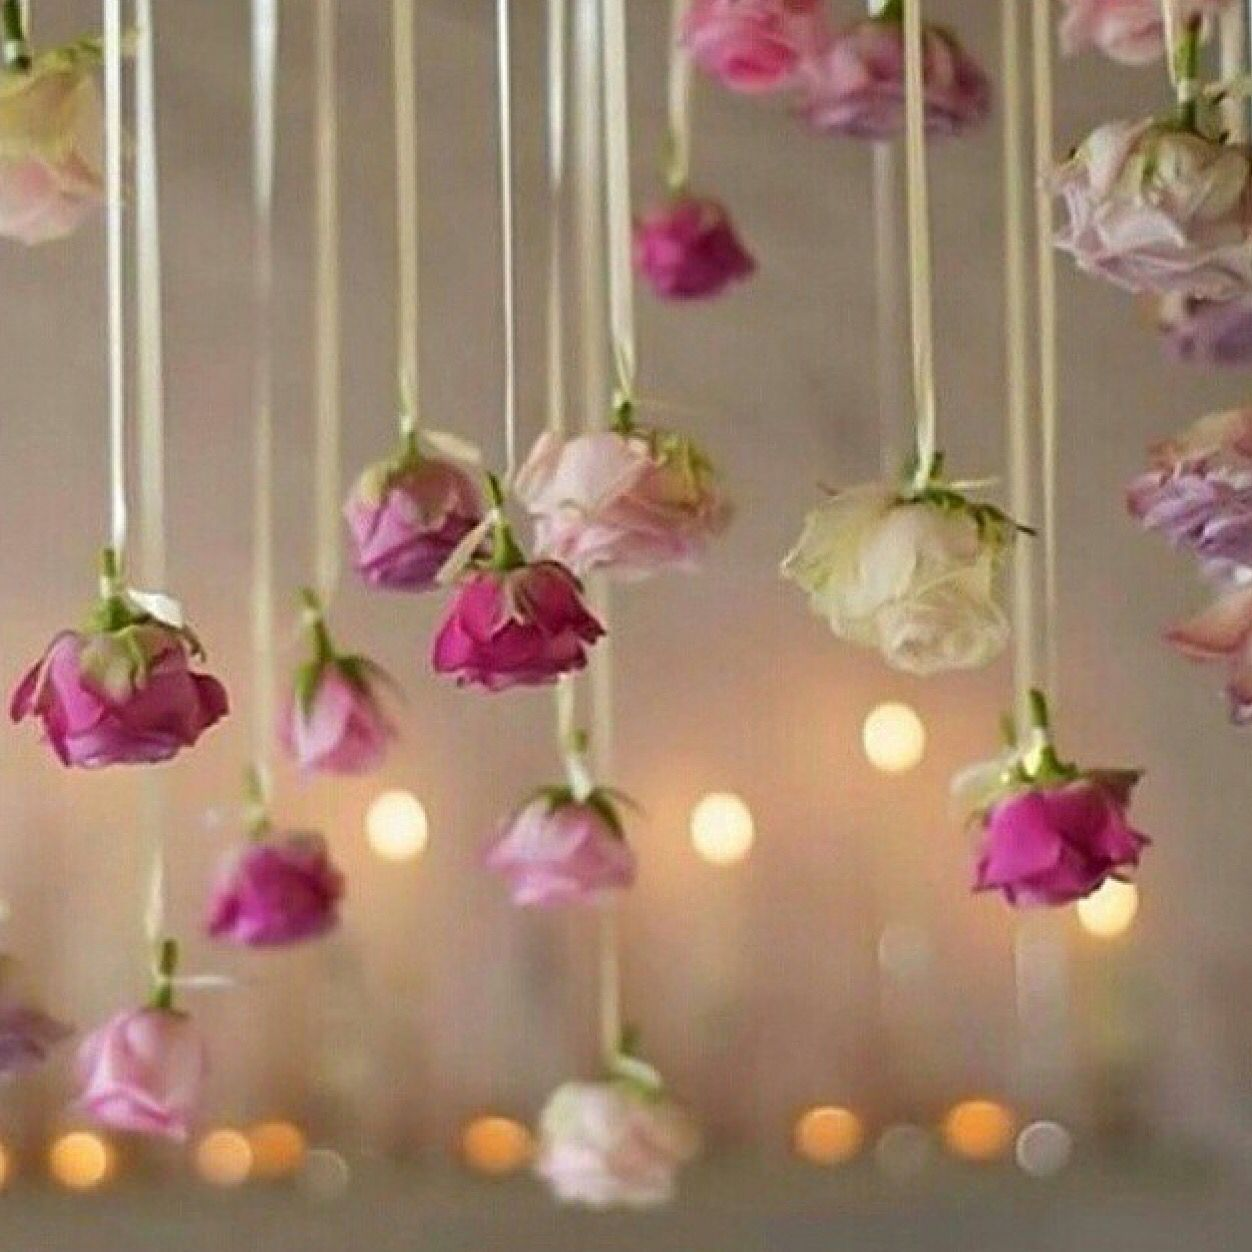 Decoration Flowers For Wedding: Pin By Pooja Doshi On Wedding Ideas